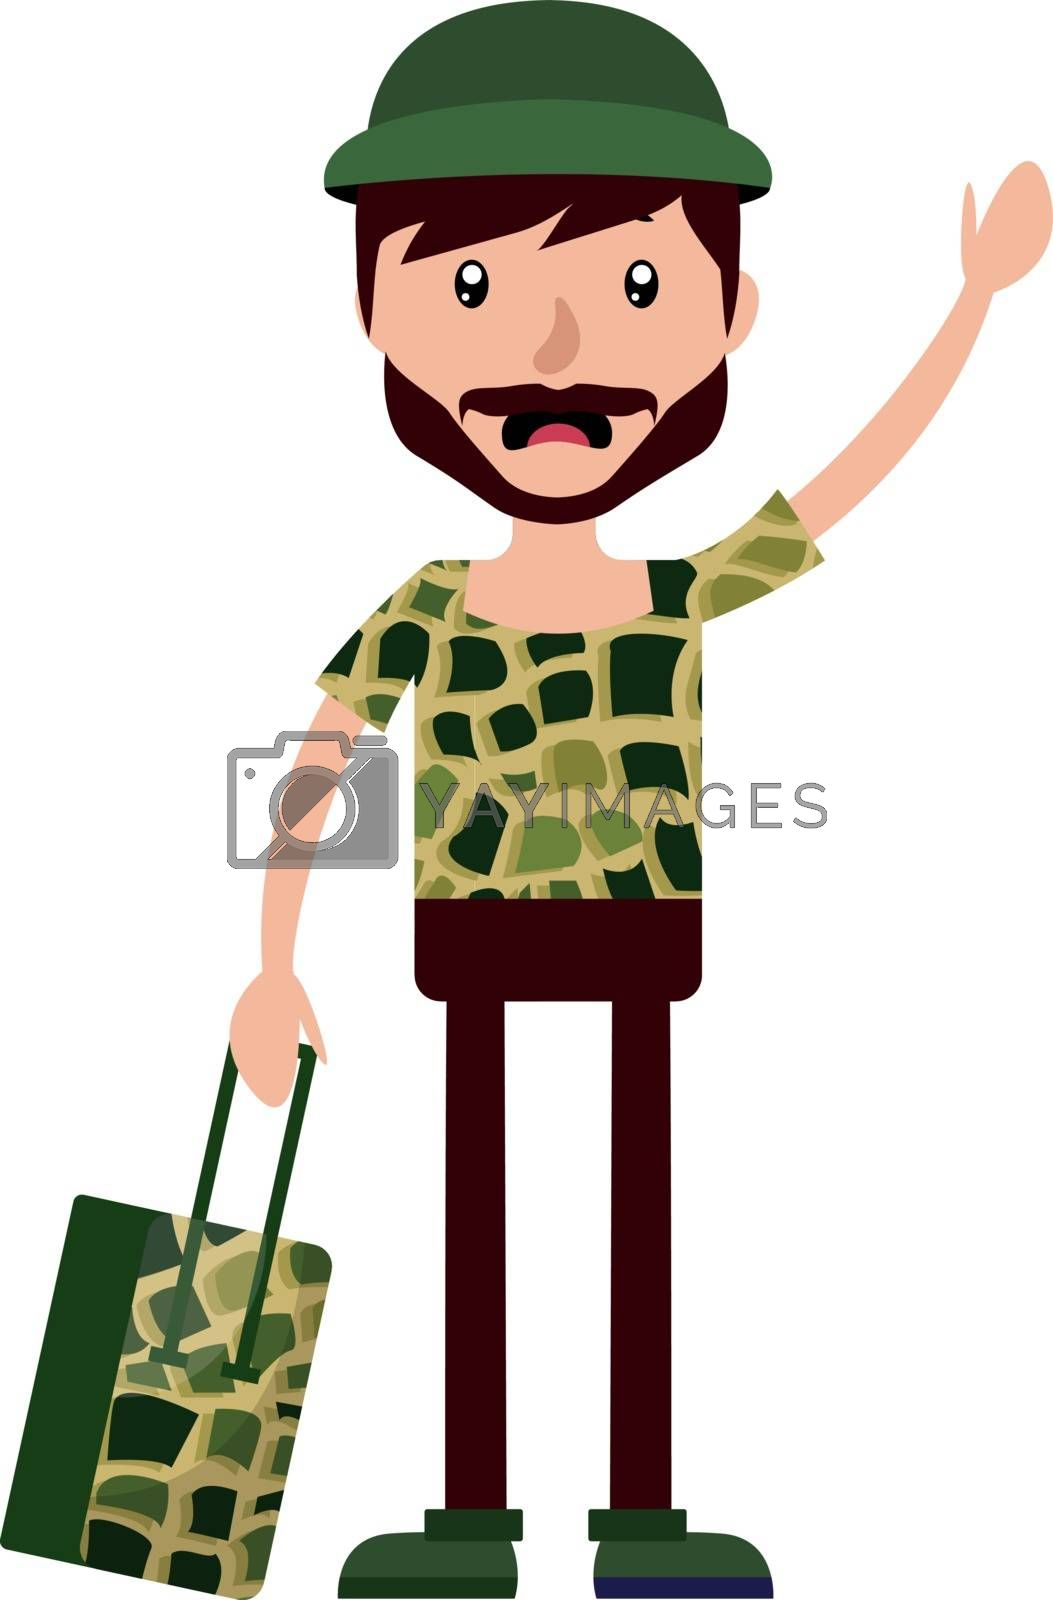 Royalty free image of Young man waving at someone and holding a suitcase illustration  by Morphart